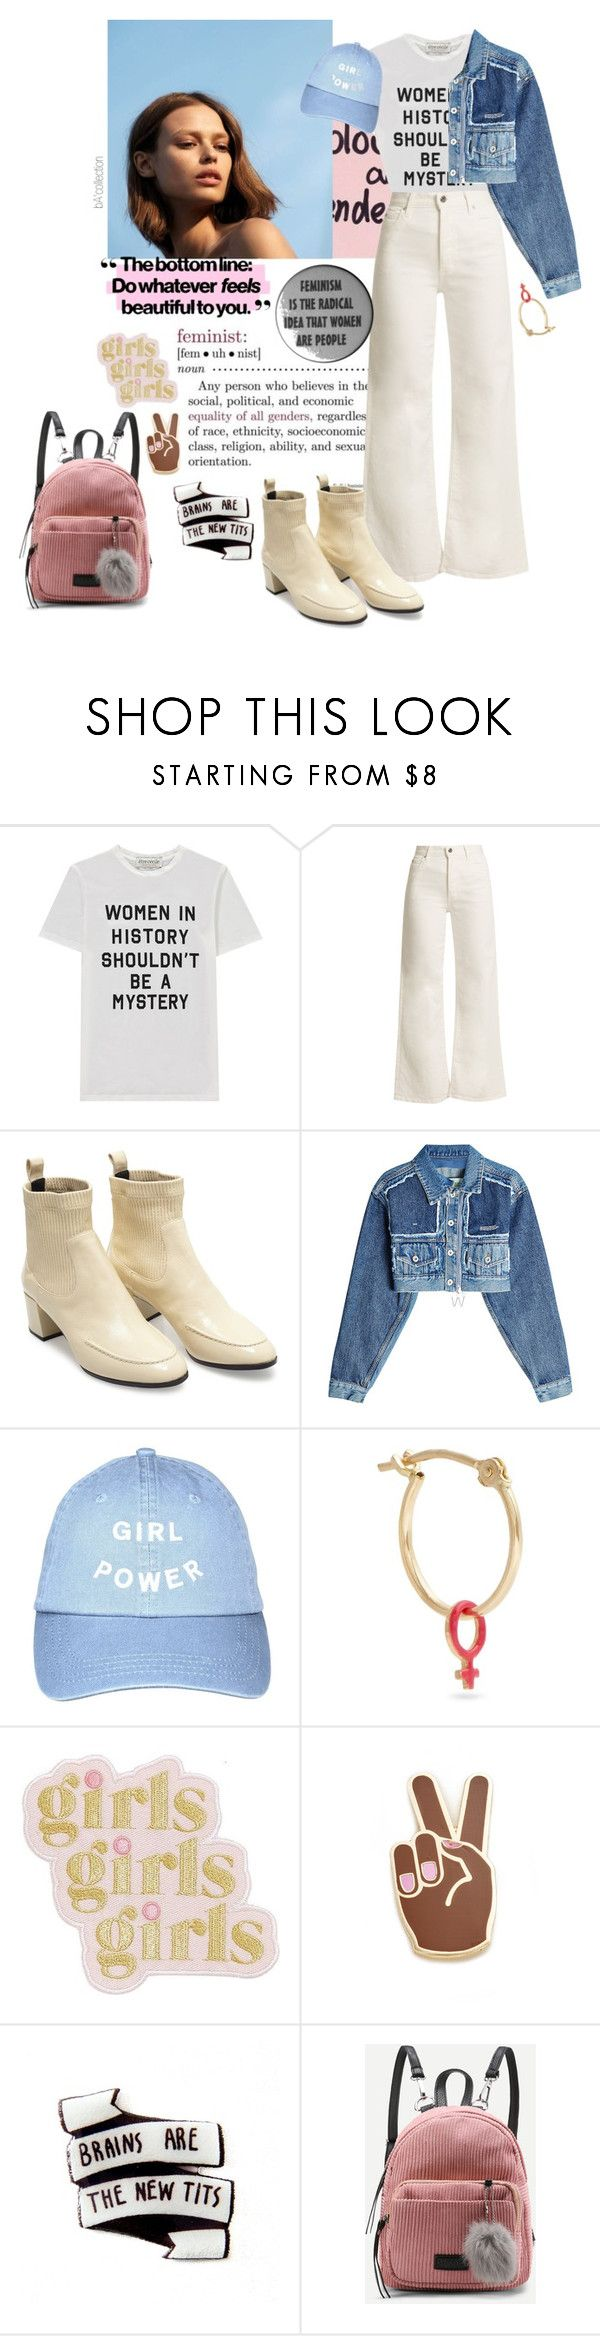 """""""Loud and Proud: Girl Pride#262"""" by zeyleezh ❤ liked on Polyvore featuring Être Cécile, Eve Denim, Pierre Hardy, Off-White, Alison Lou, ban.do, Georgia Perry, womensHistoryMonth, pressforprogress and GirlPride"""